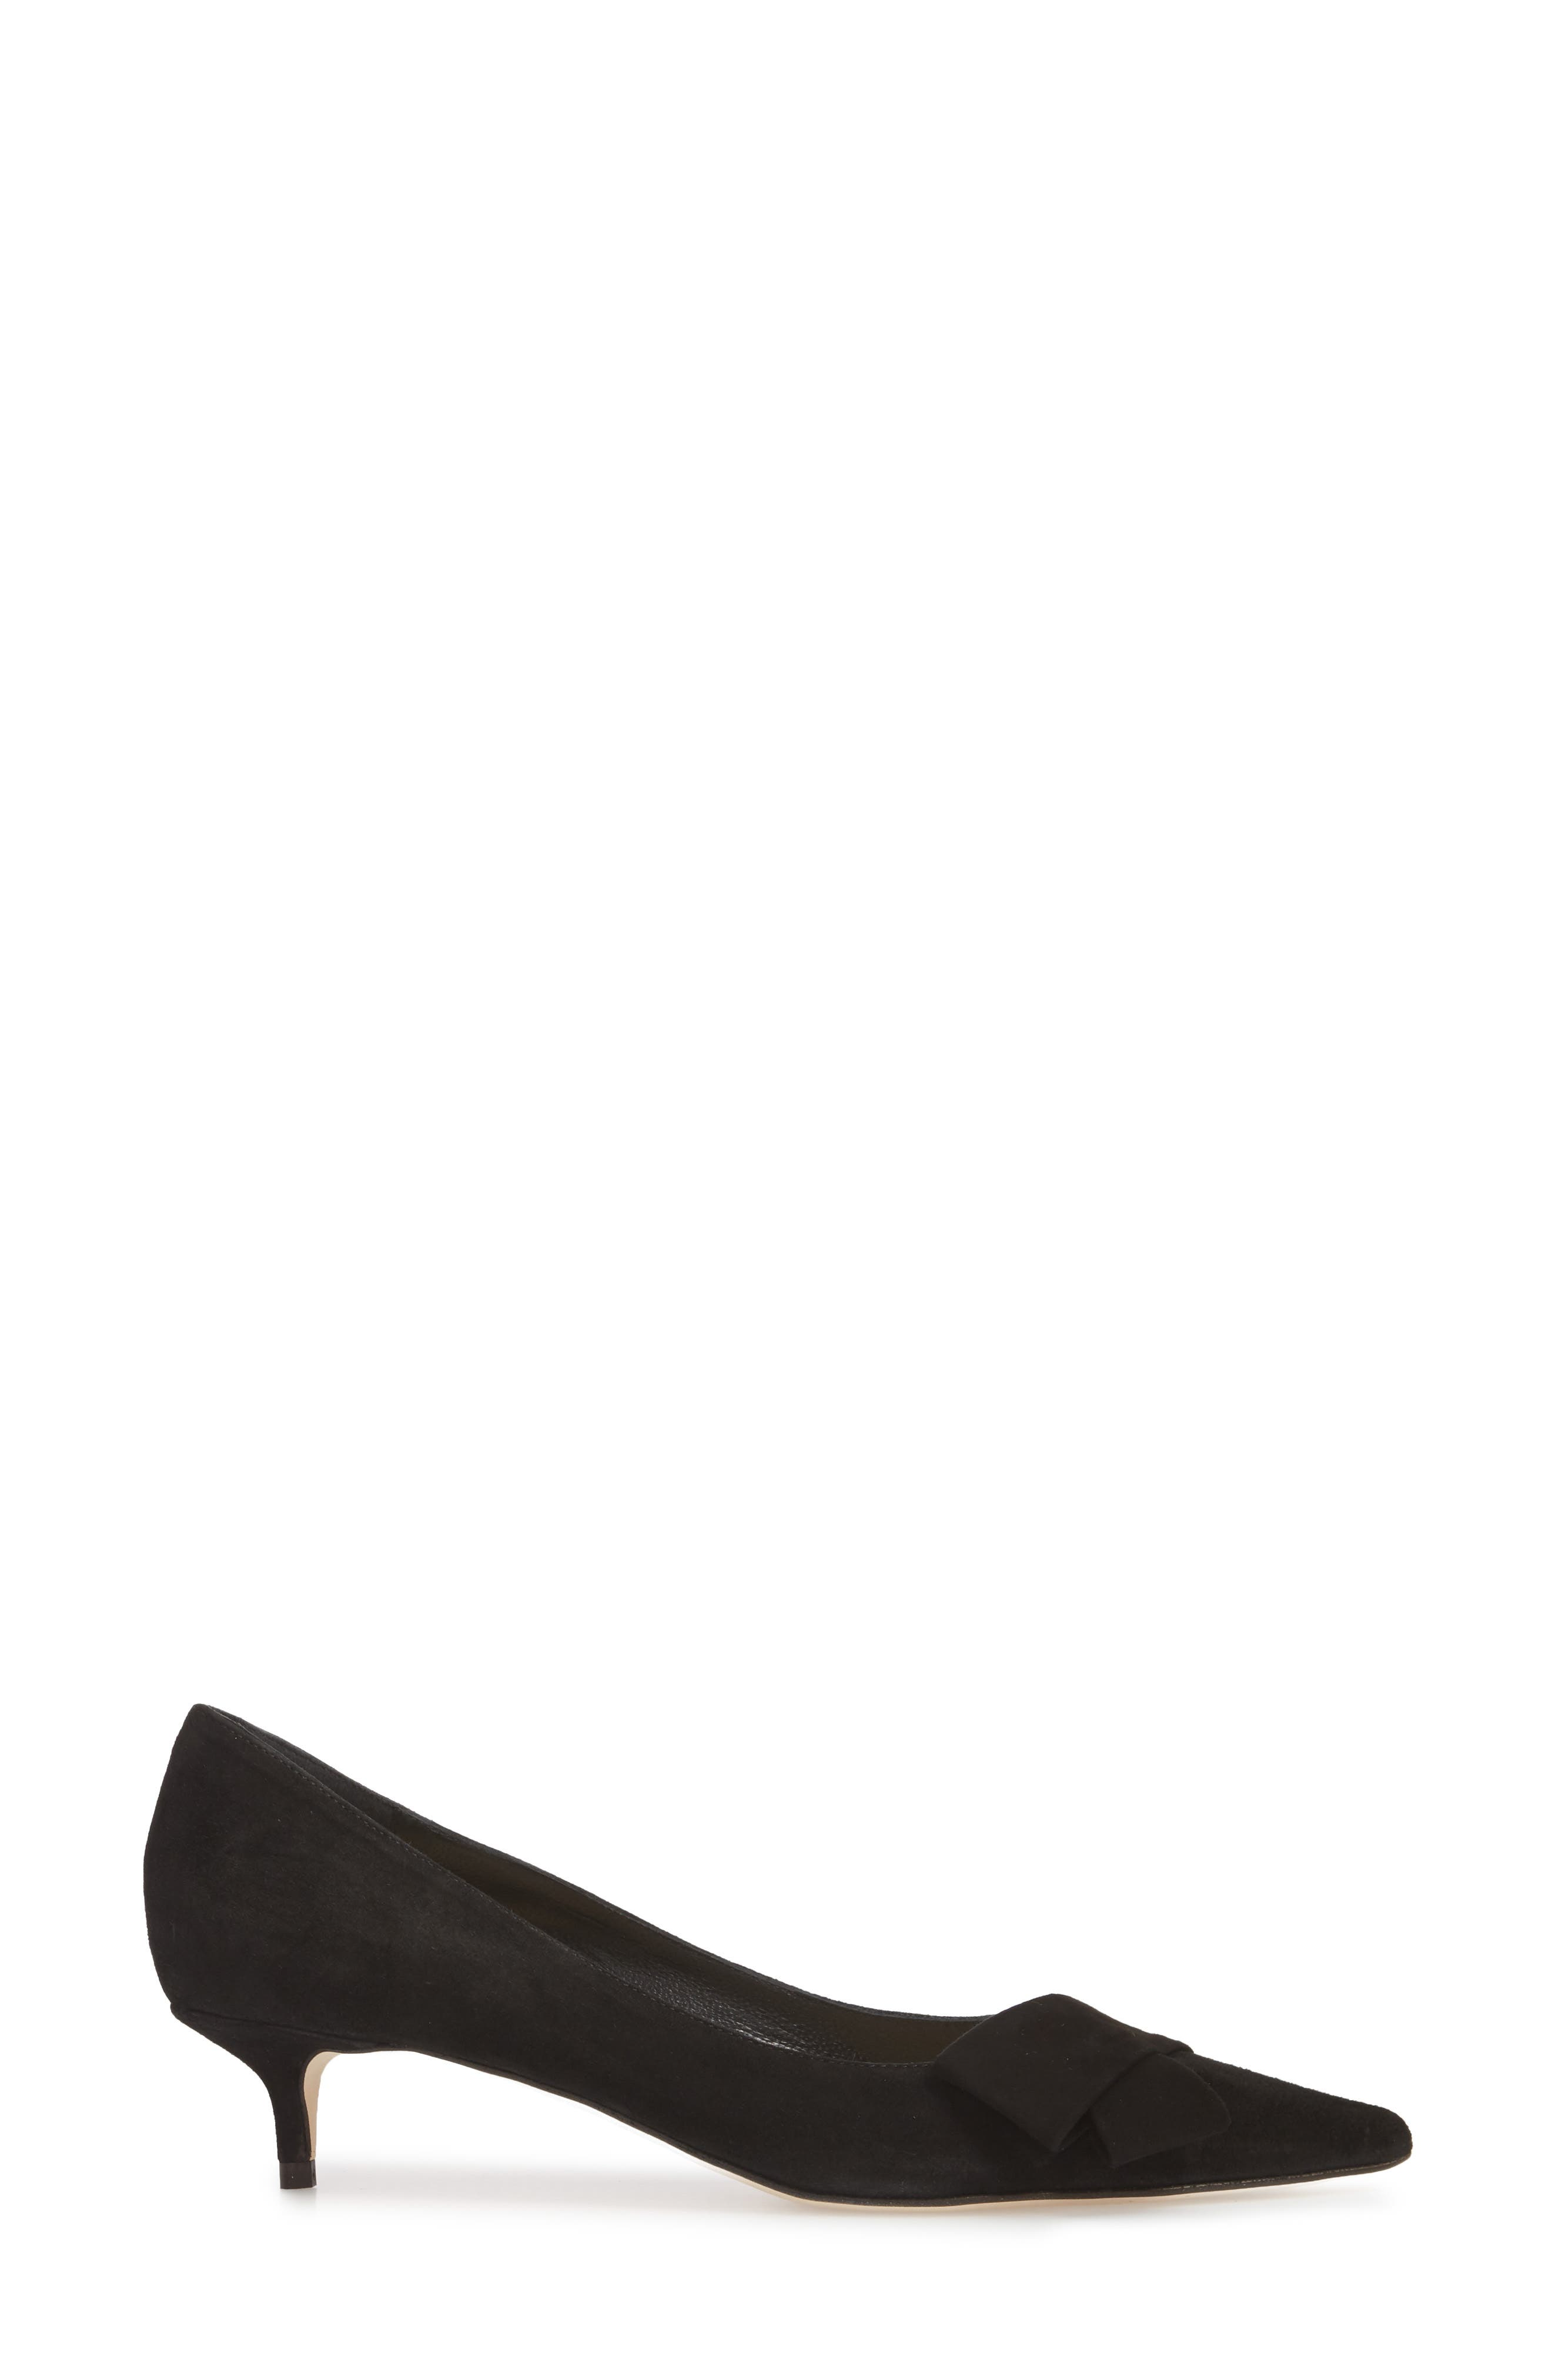 Butter Bliss Pointy Toe Pump,                             Alternate thumbnail 4, color,                             Black Suede